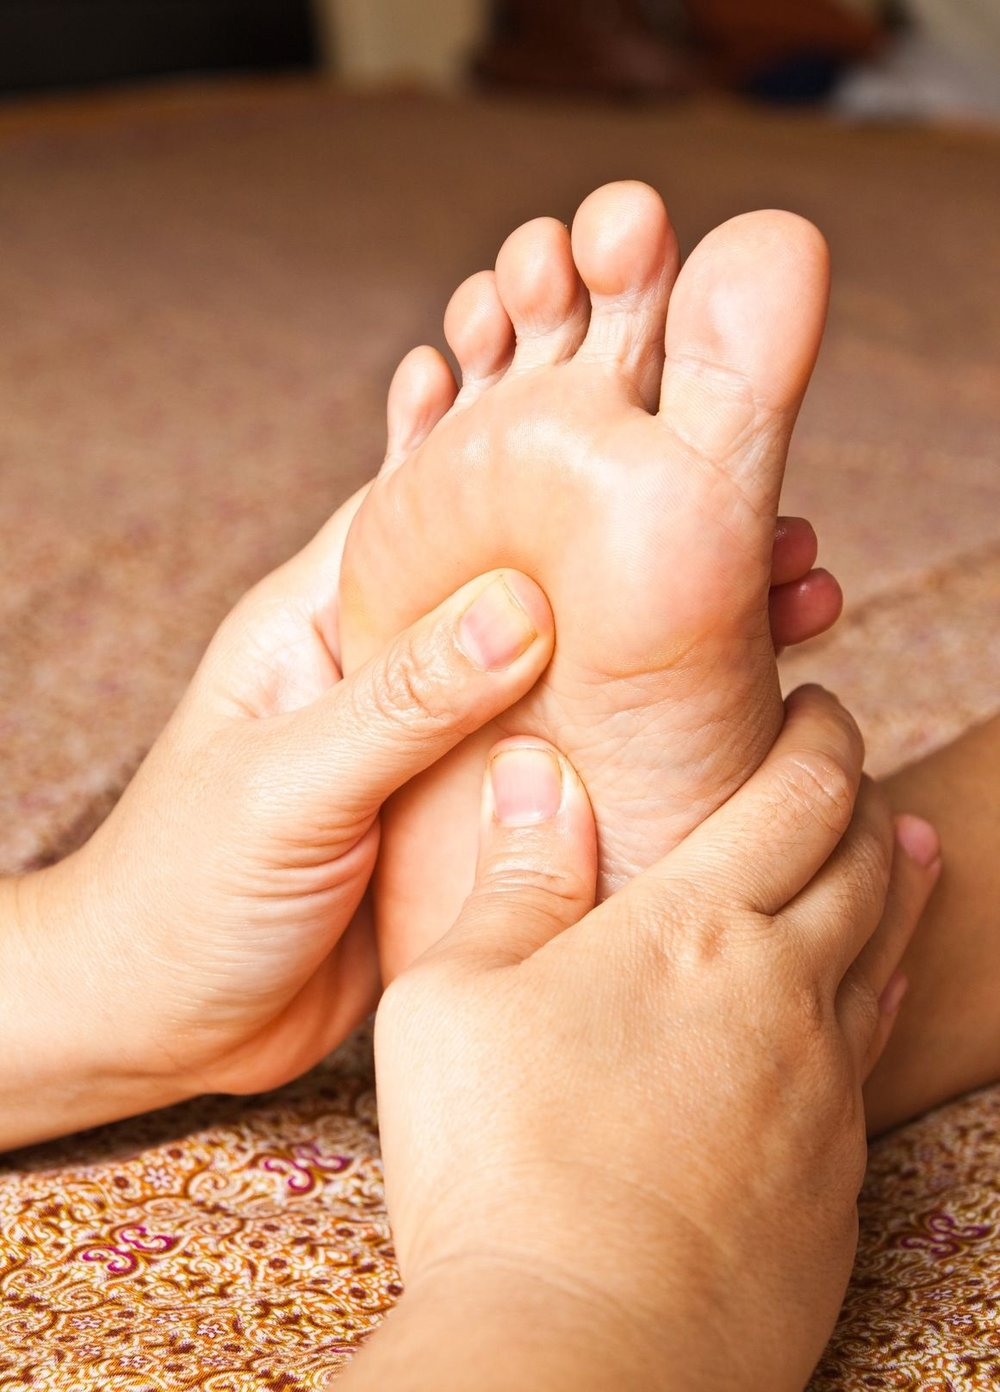 10416670_L_Foot_Massage_Feet_Hands.jpg